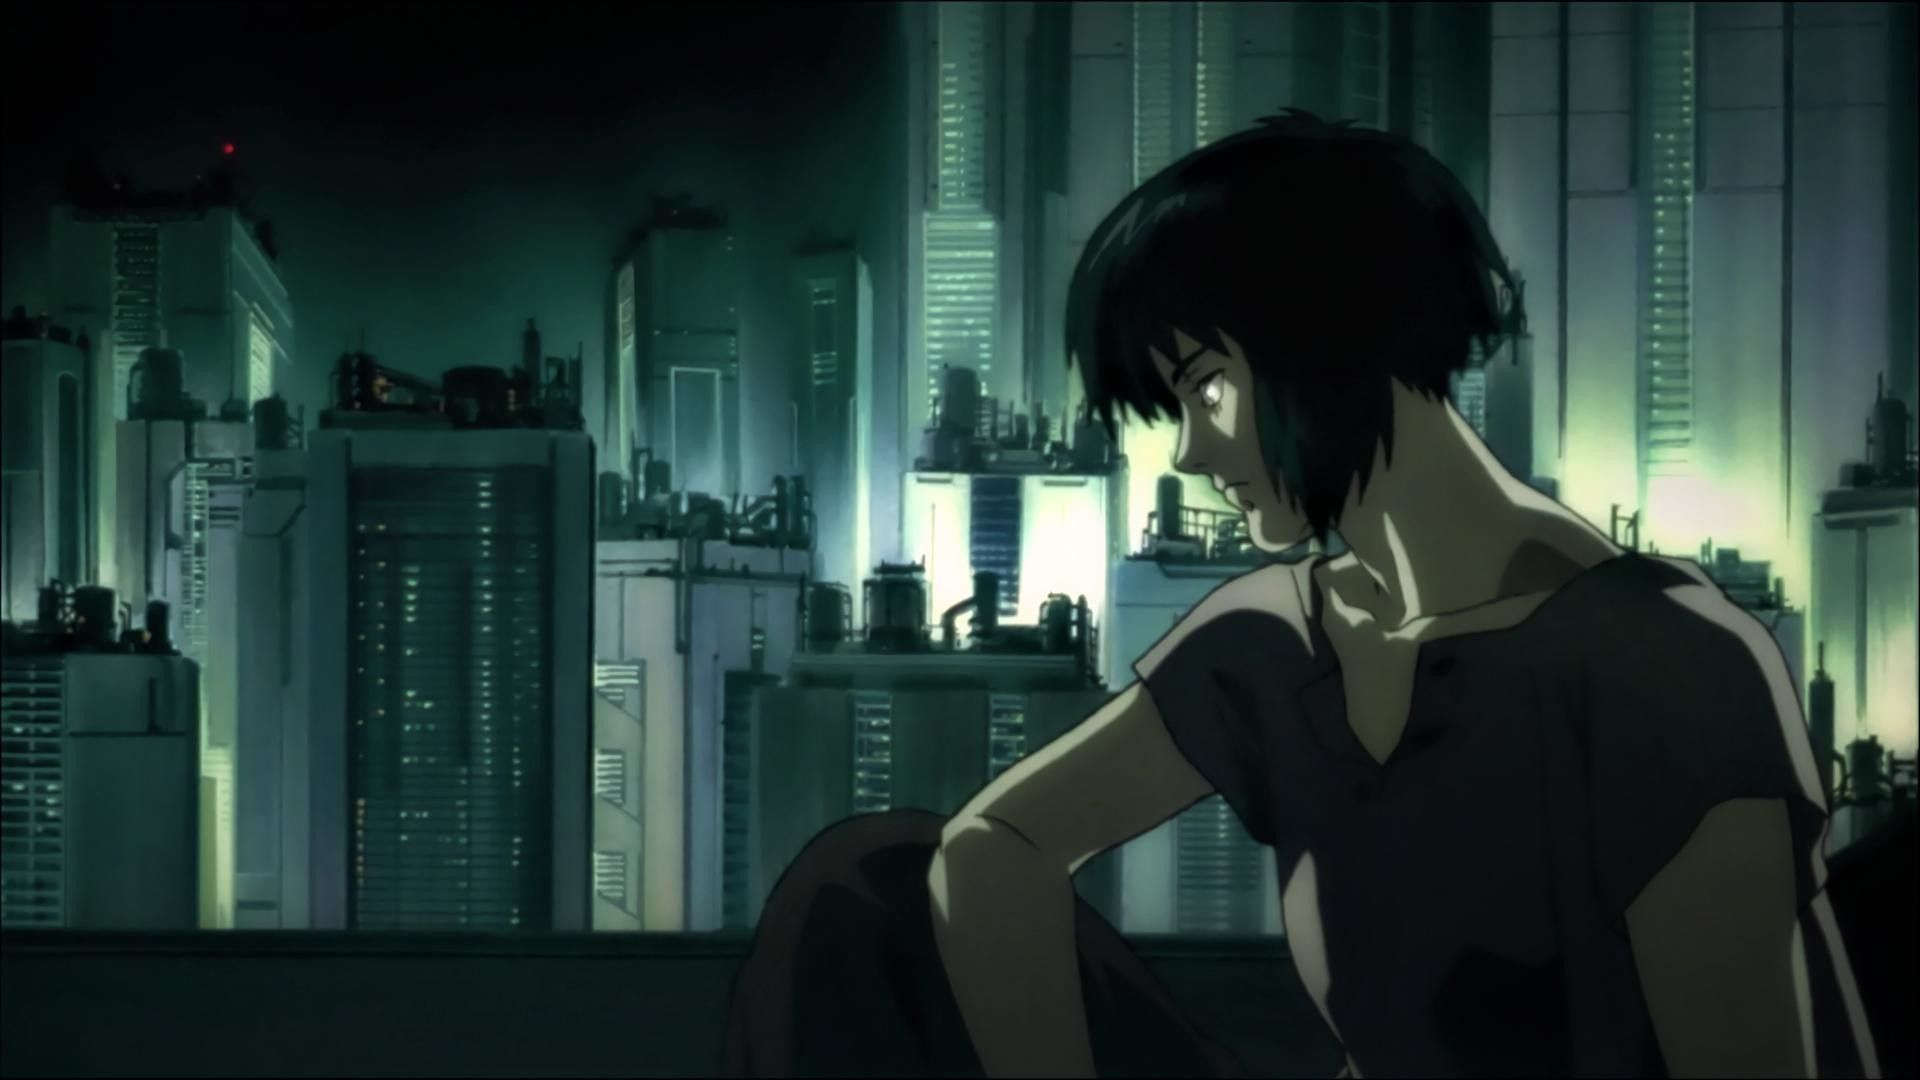 Ghost In The Shell Mamoru Oshii 1995 In 2020 Ghost In The Shell Ghost Anime Wallpaper